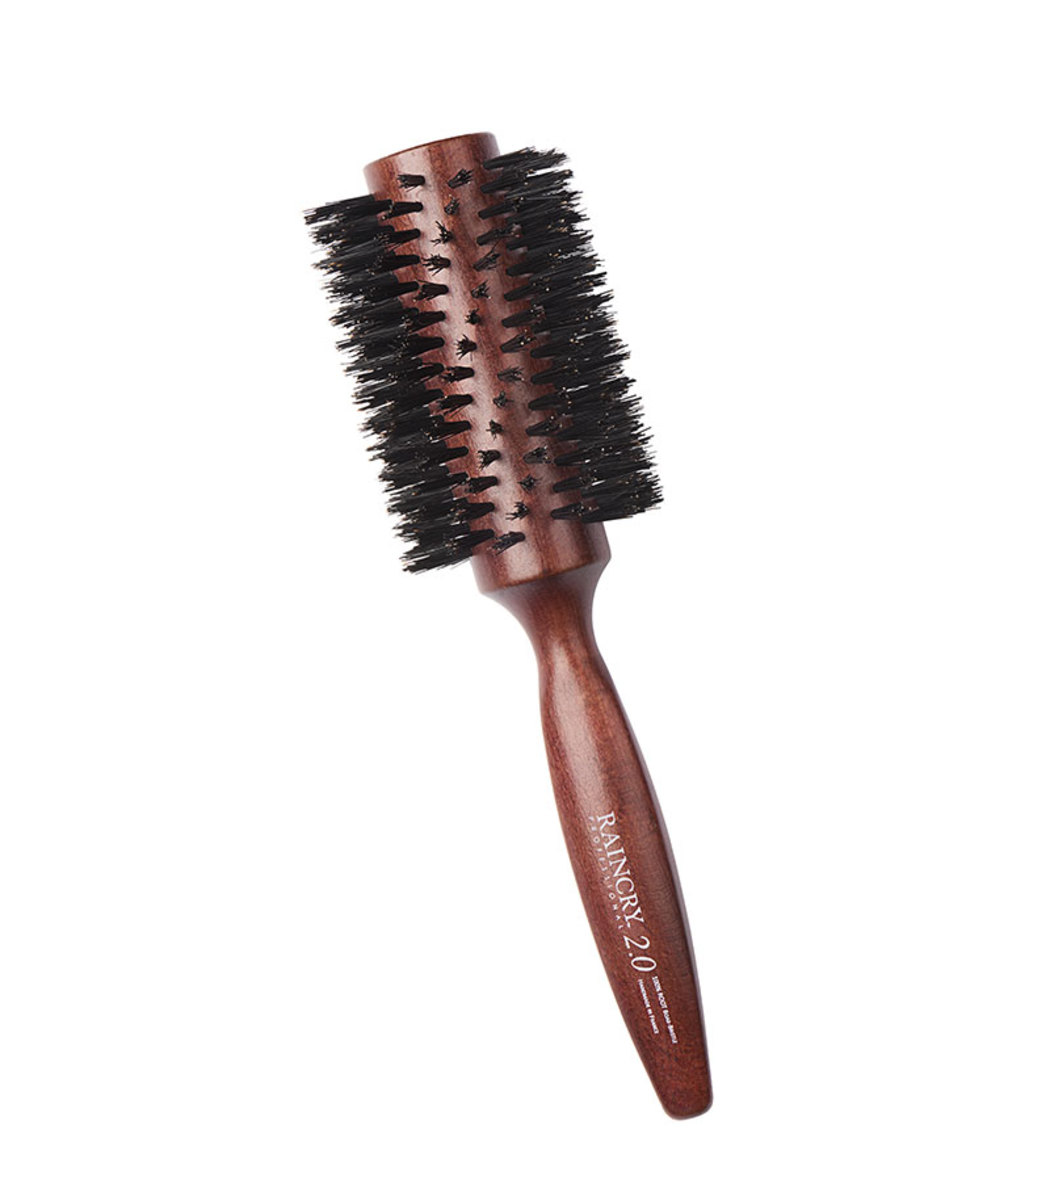 RAINCRY Pure Boar Bristle Smoothing Brush Large